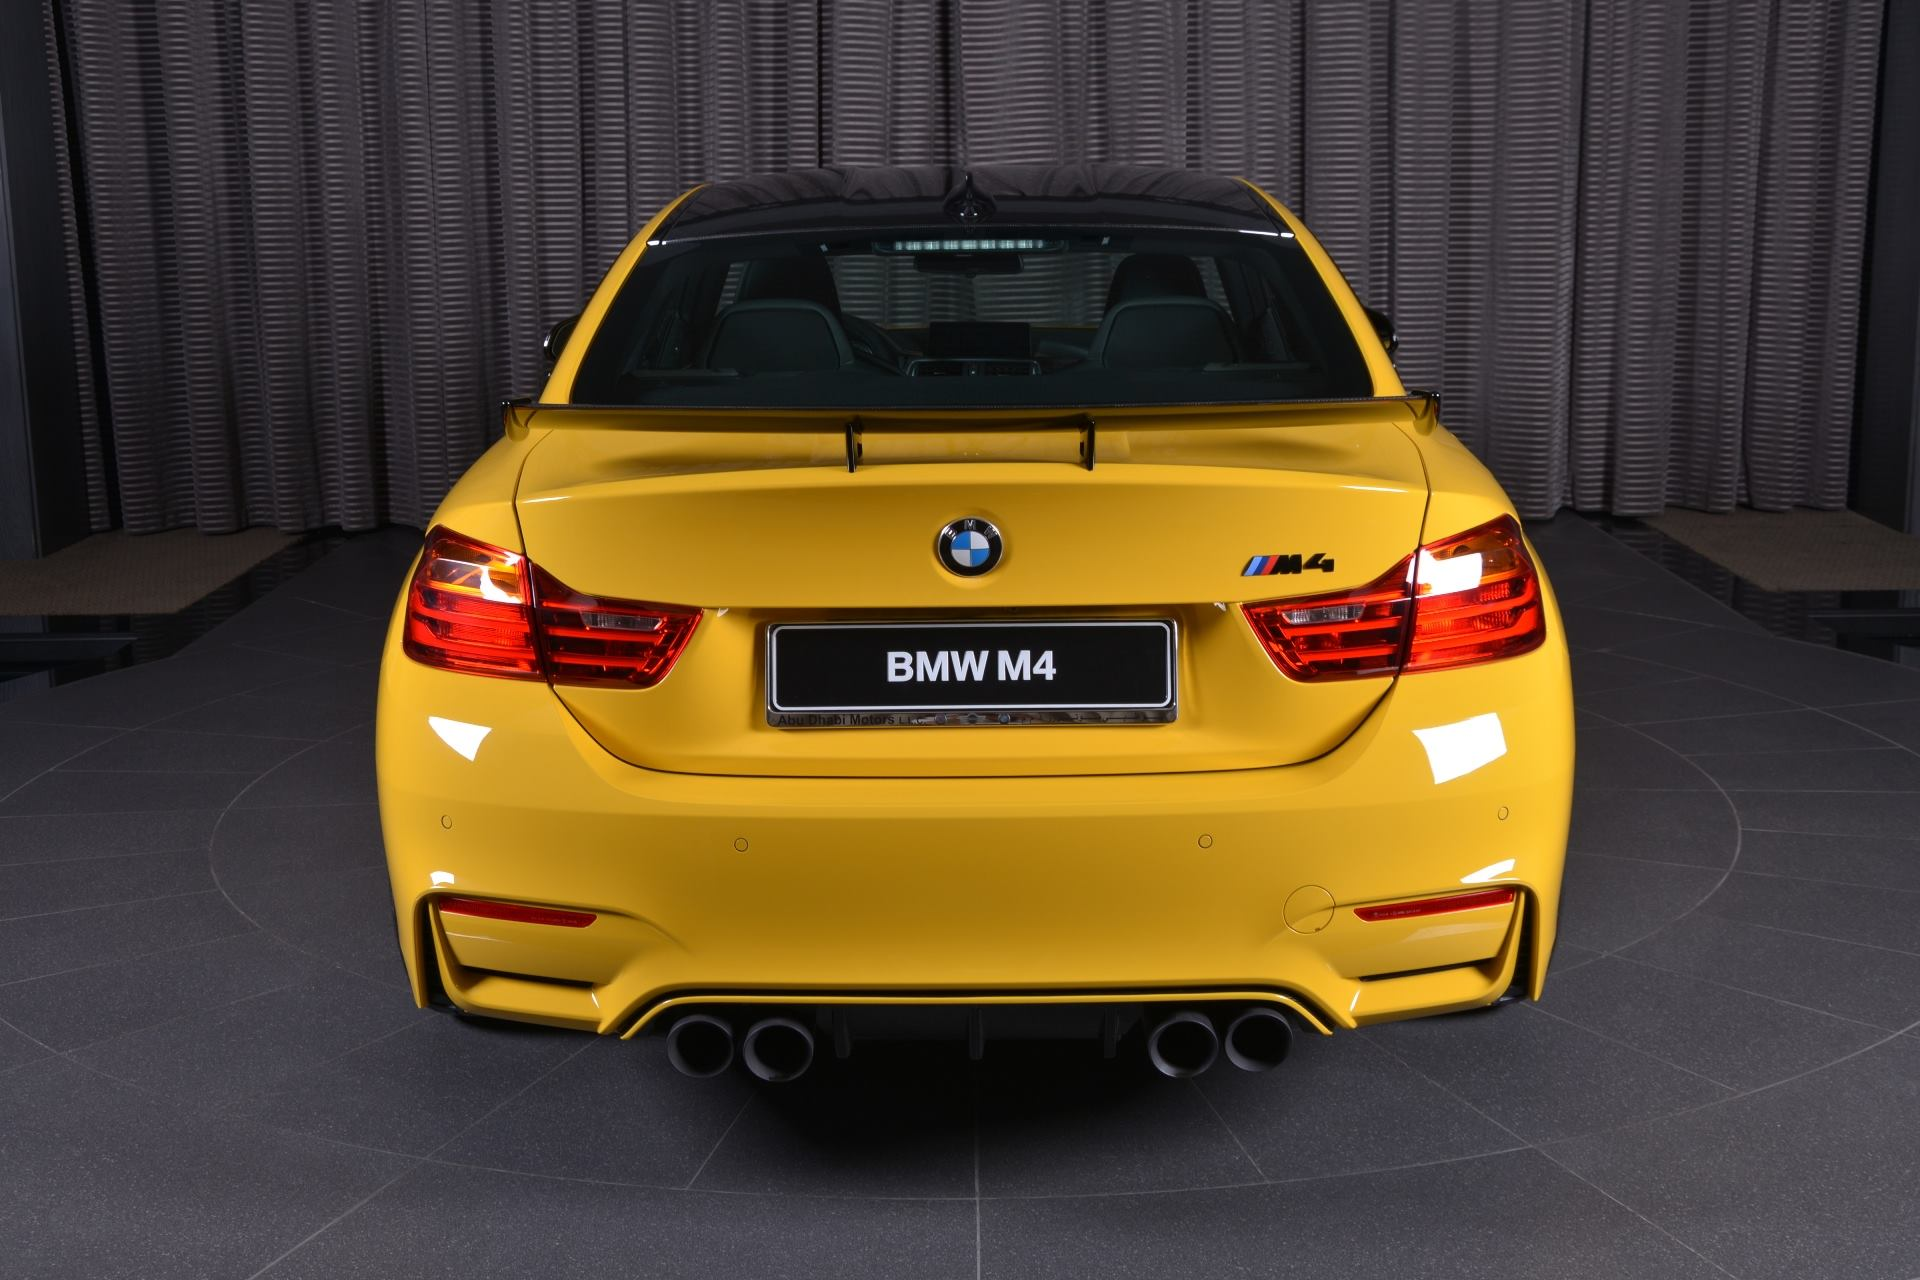 BMW M4 Speed Yellow (16)